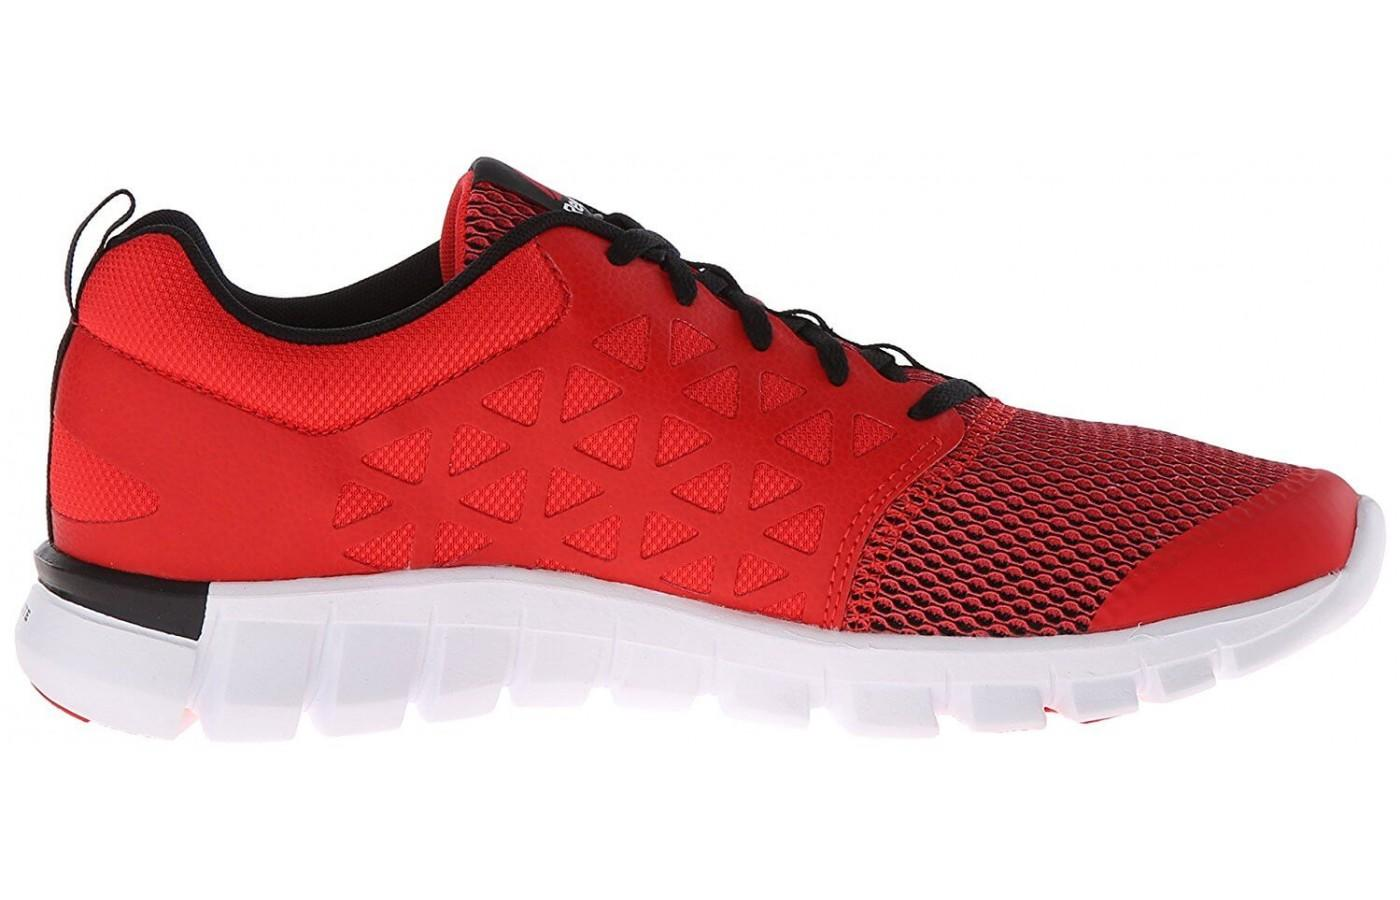 the right side of the Reebok Sublite XT Cushion 2.0